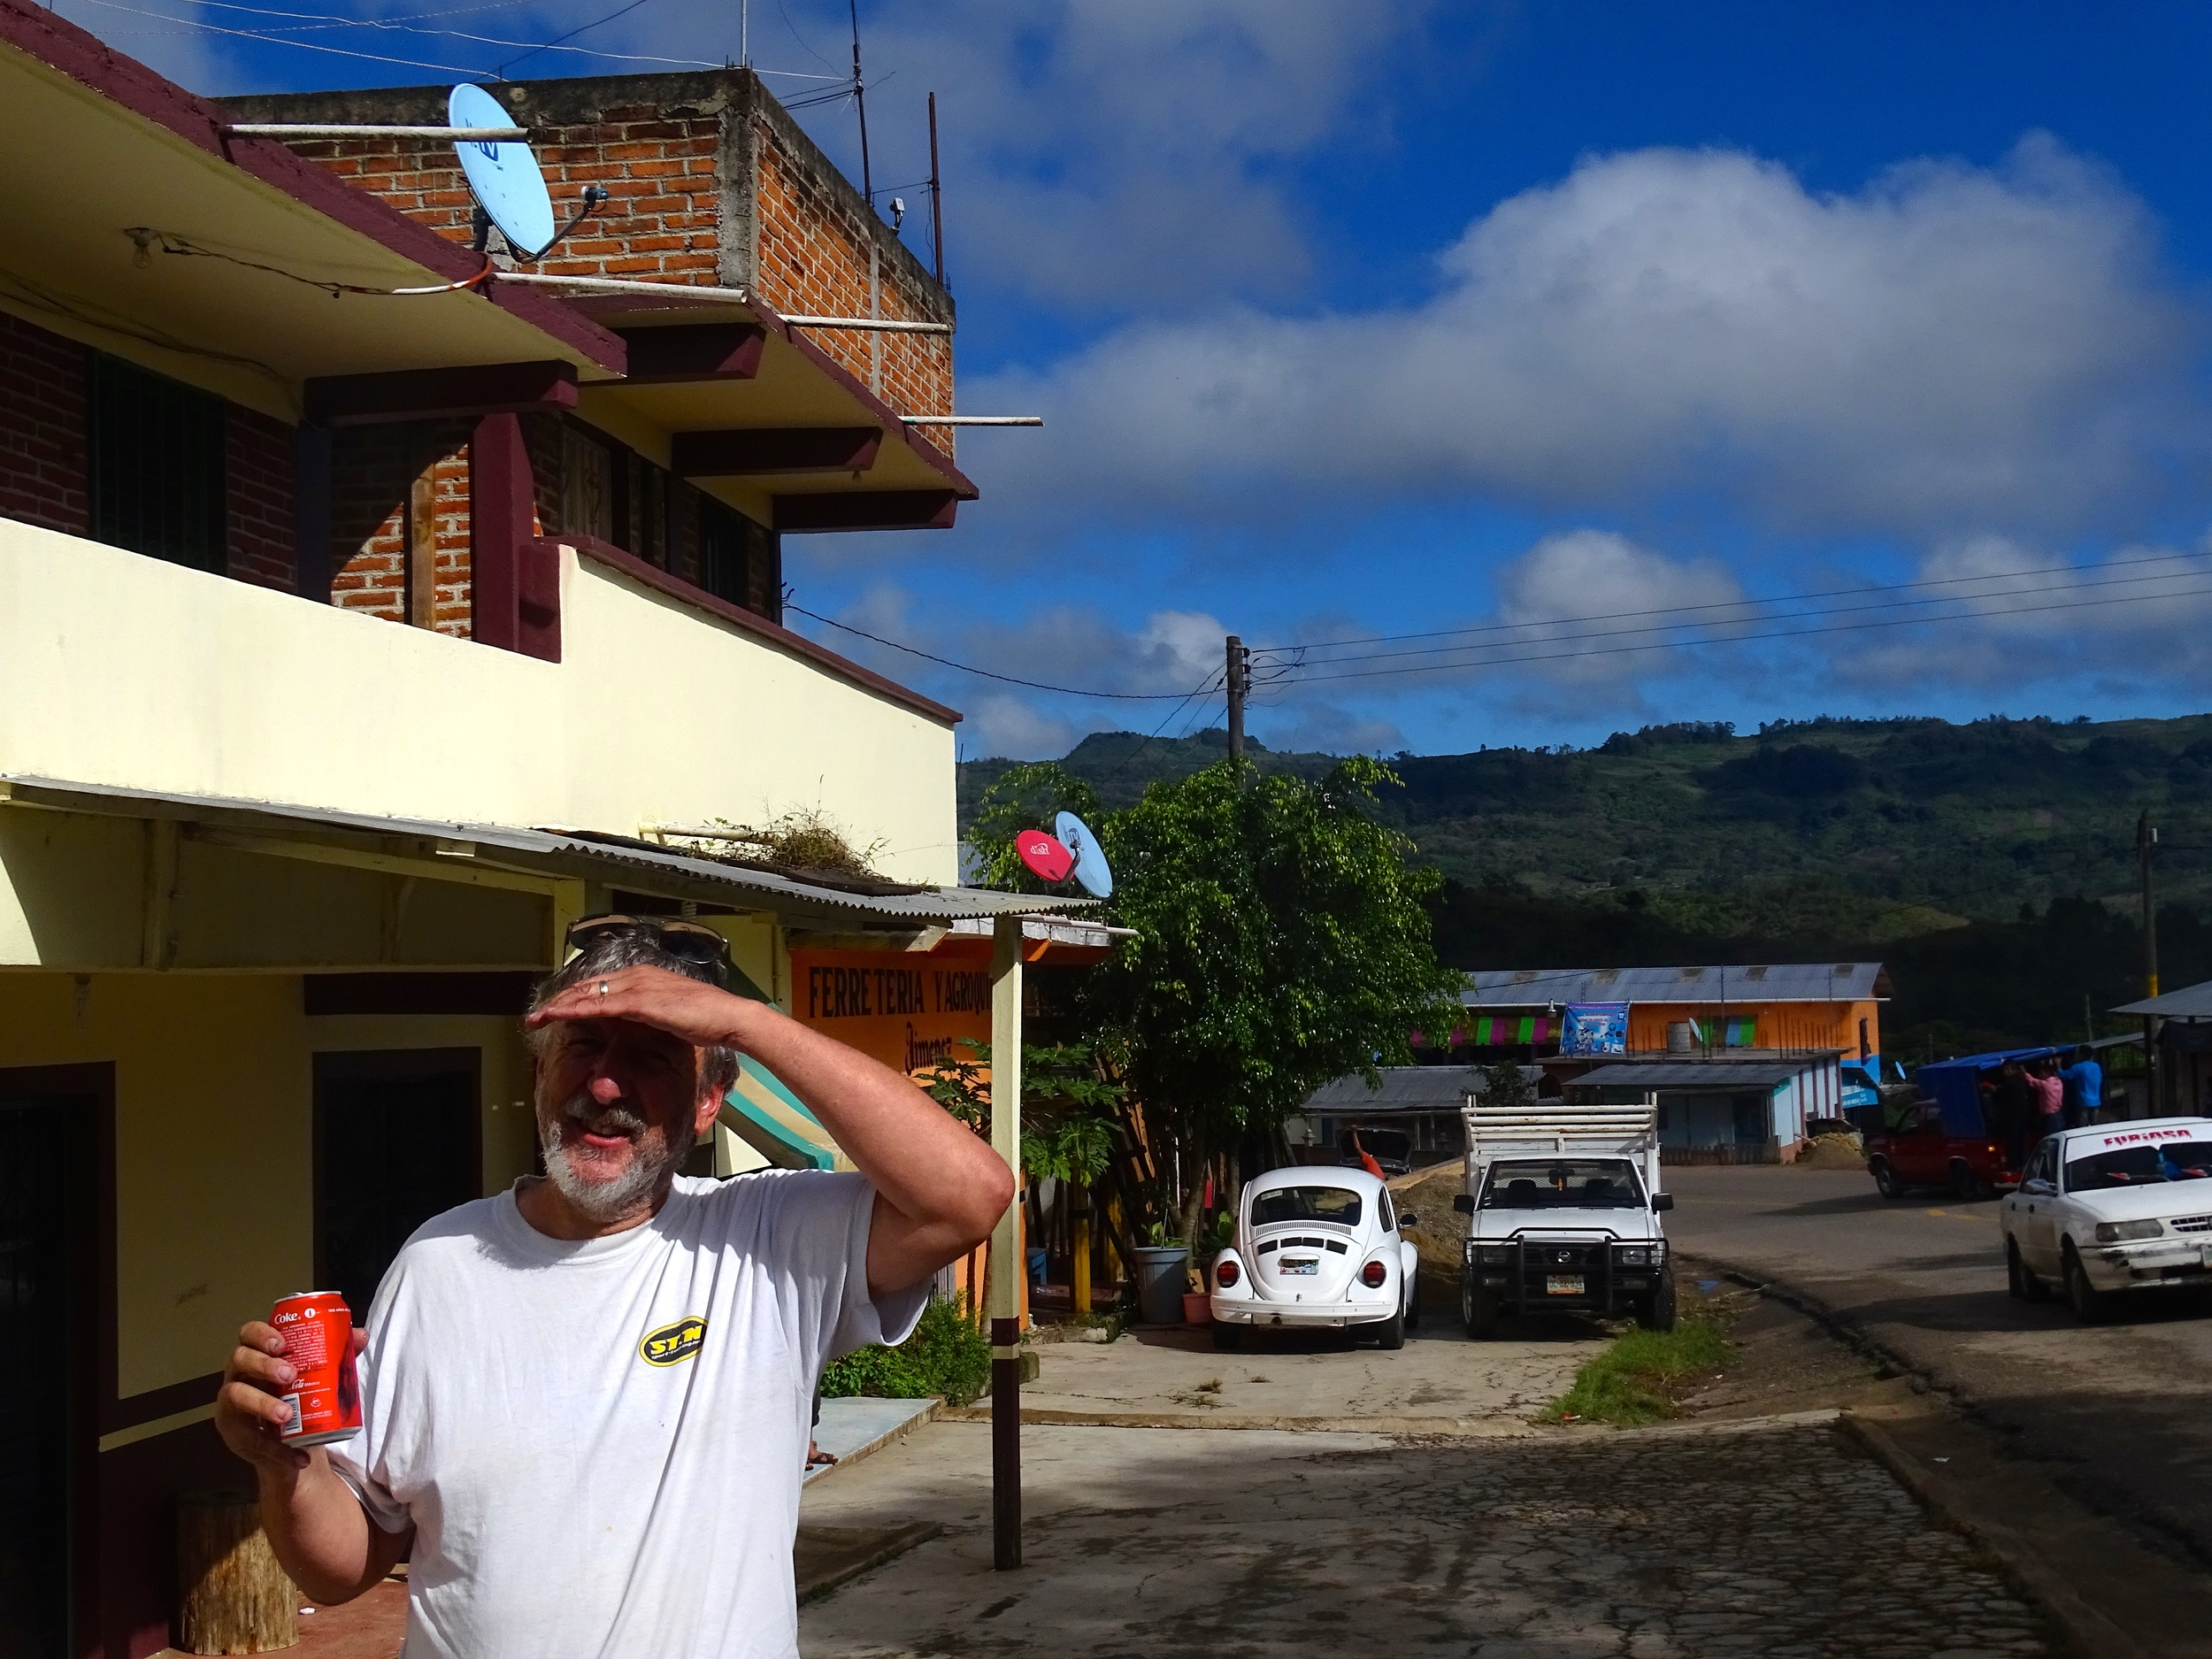 Break stop along the way to Palenque.